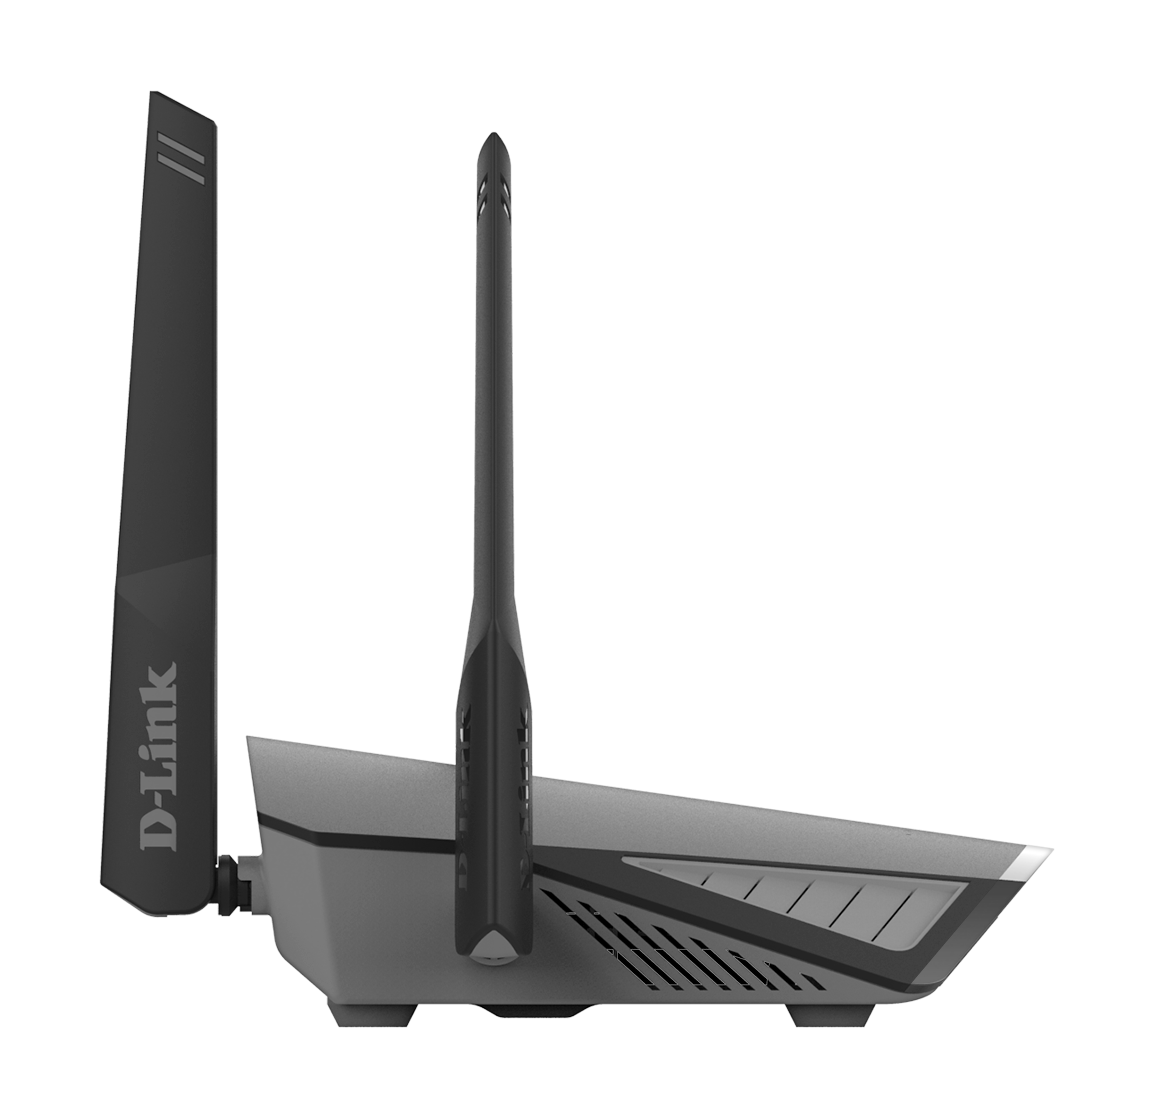 DIR-2660 EXO AC2600 Smart Mesh Wi-Fi Router right side